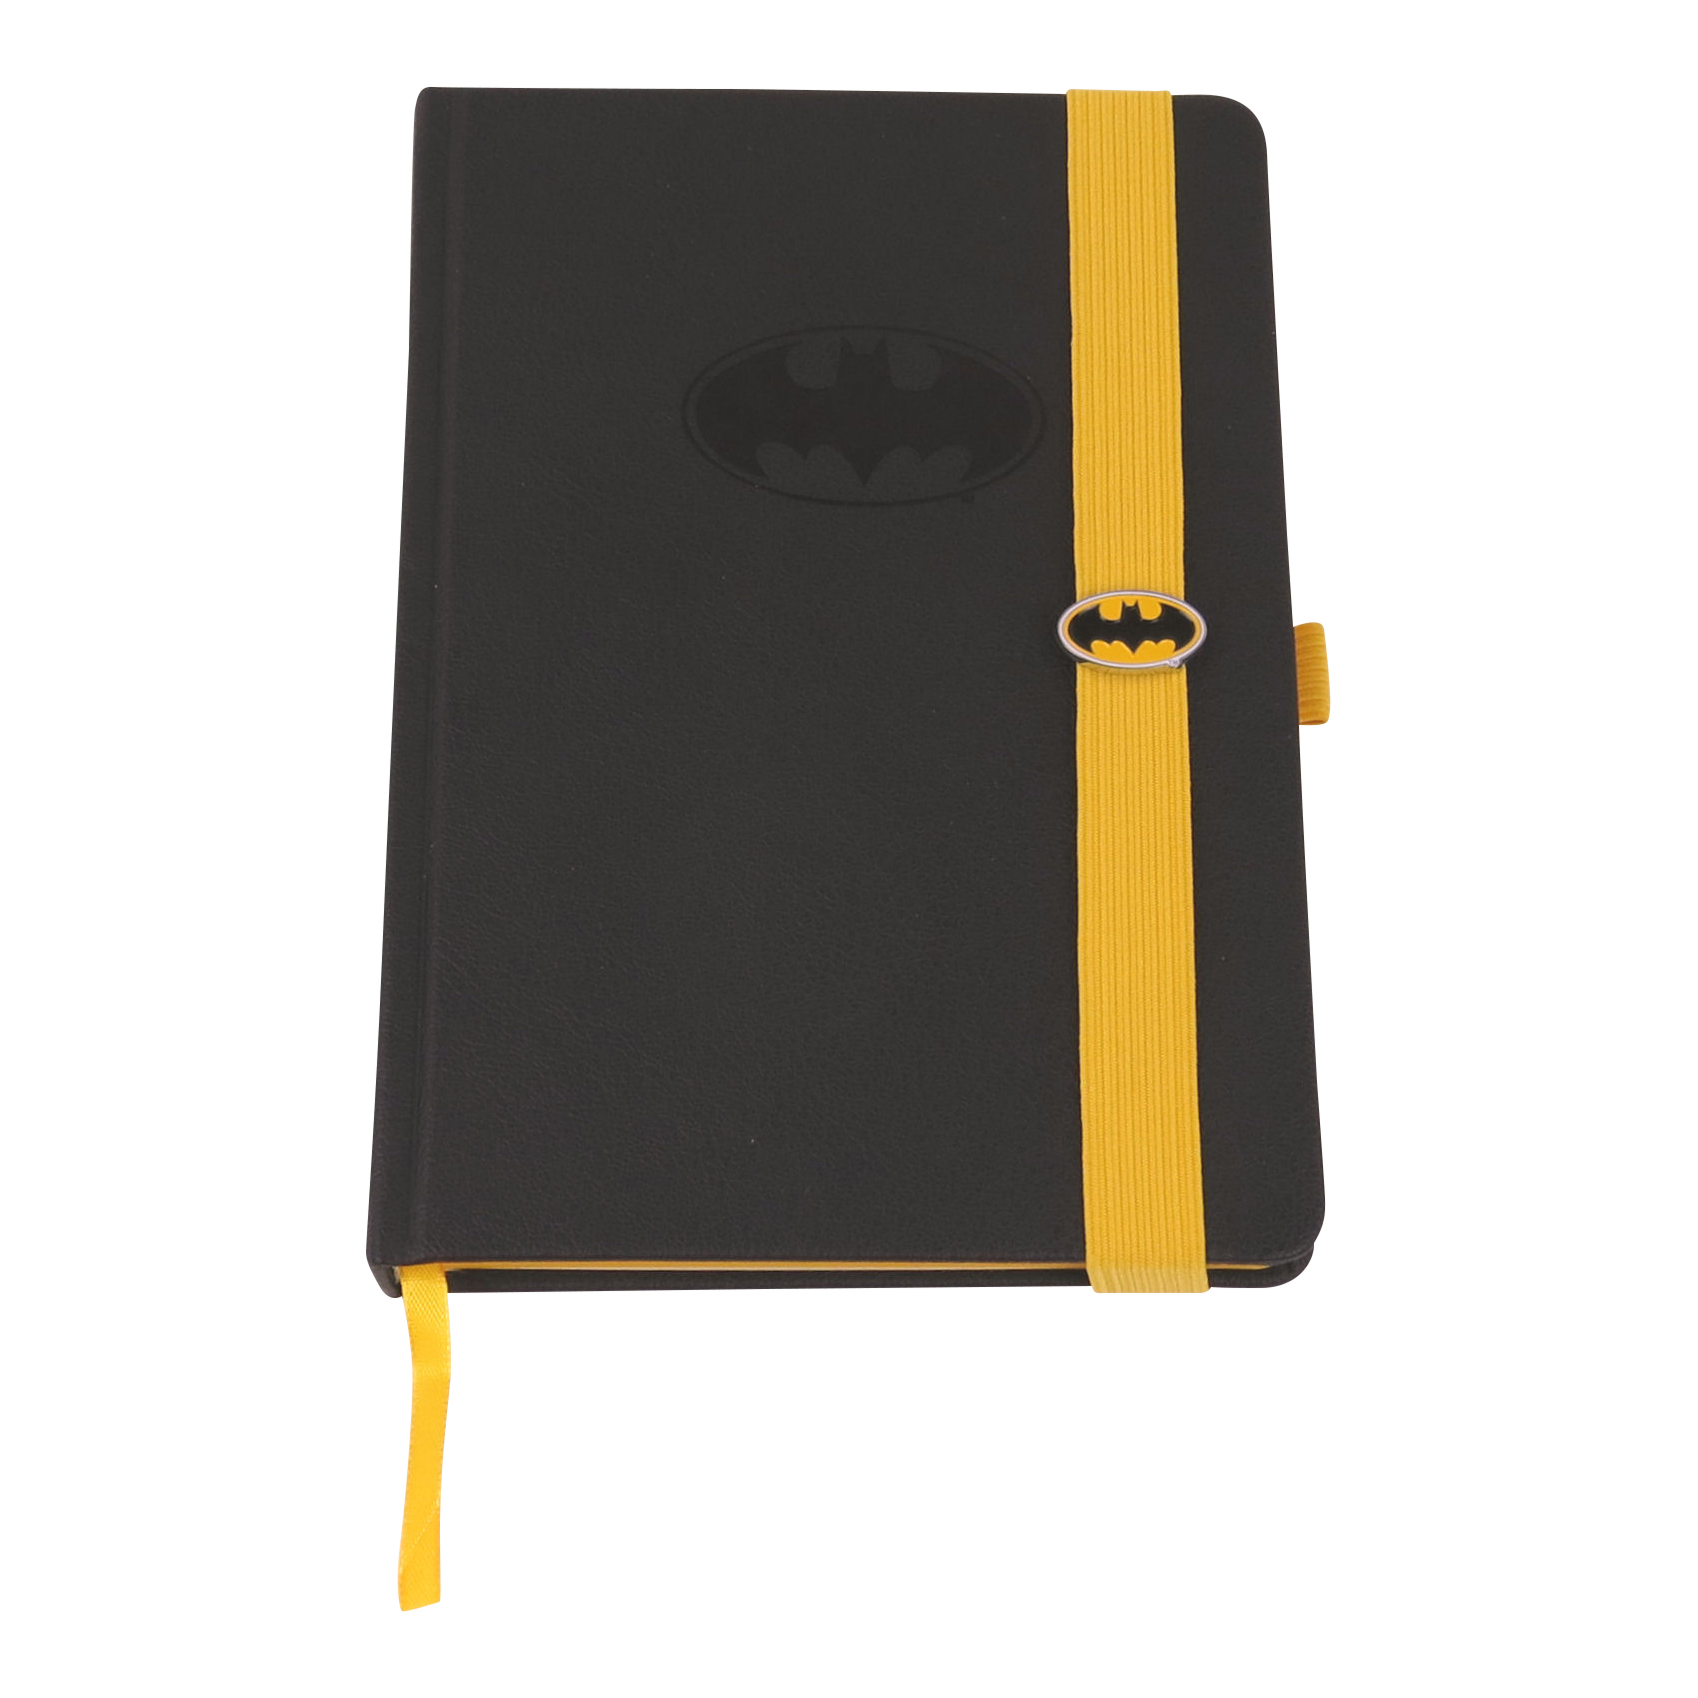 Debossed Batman Logo A5 Hardback Notebook